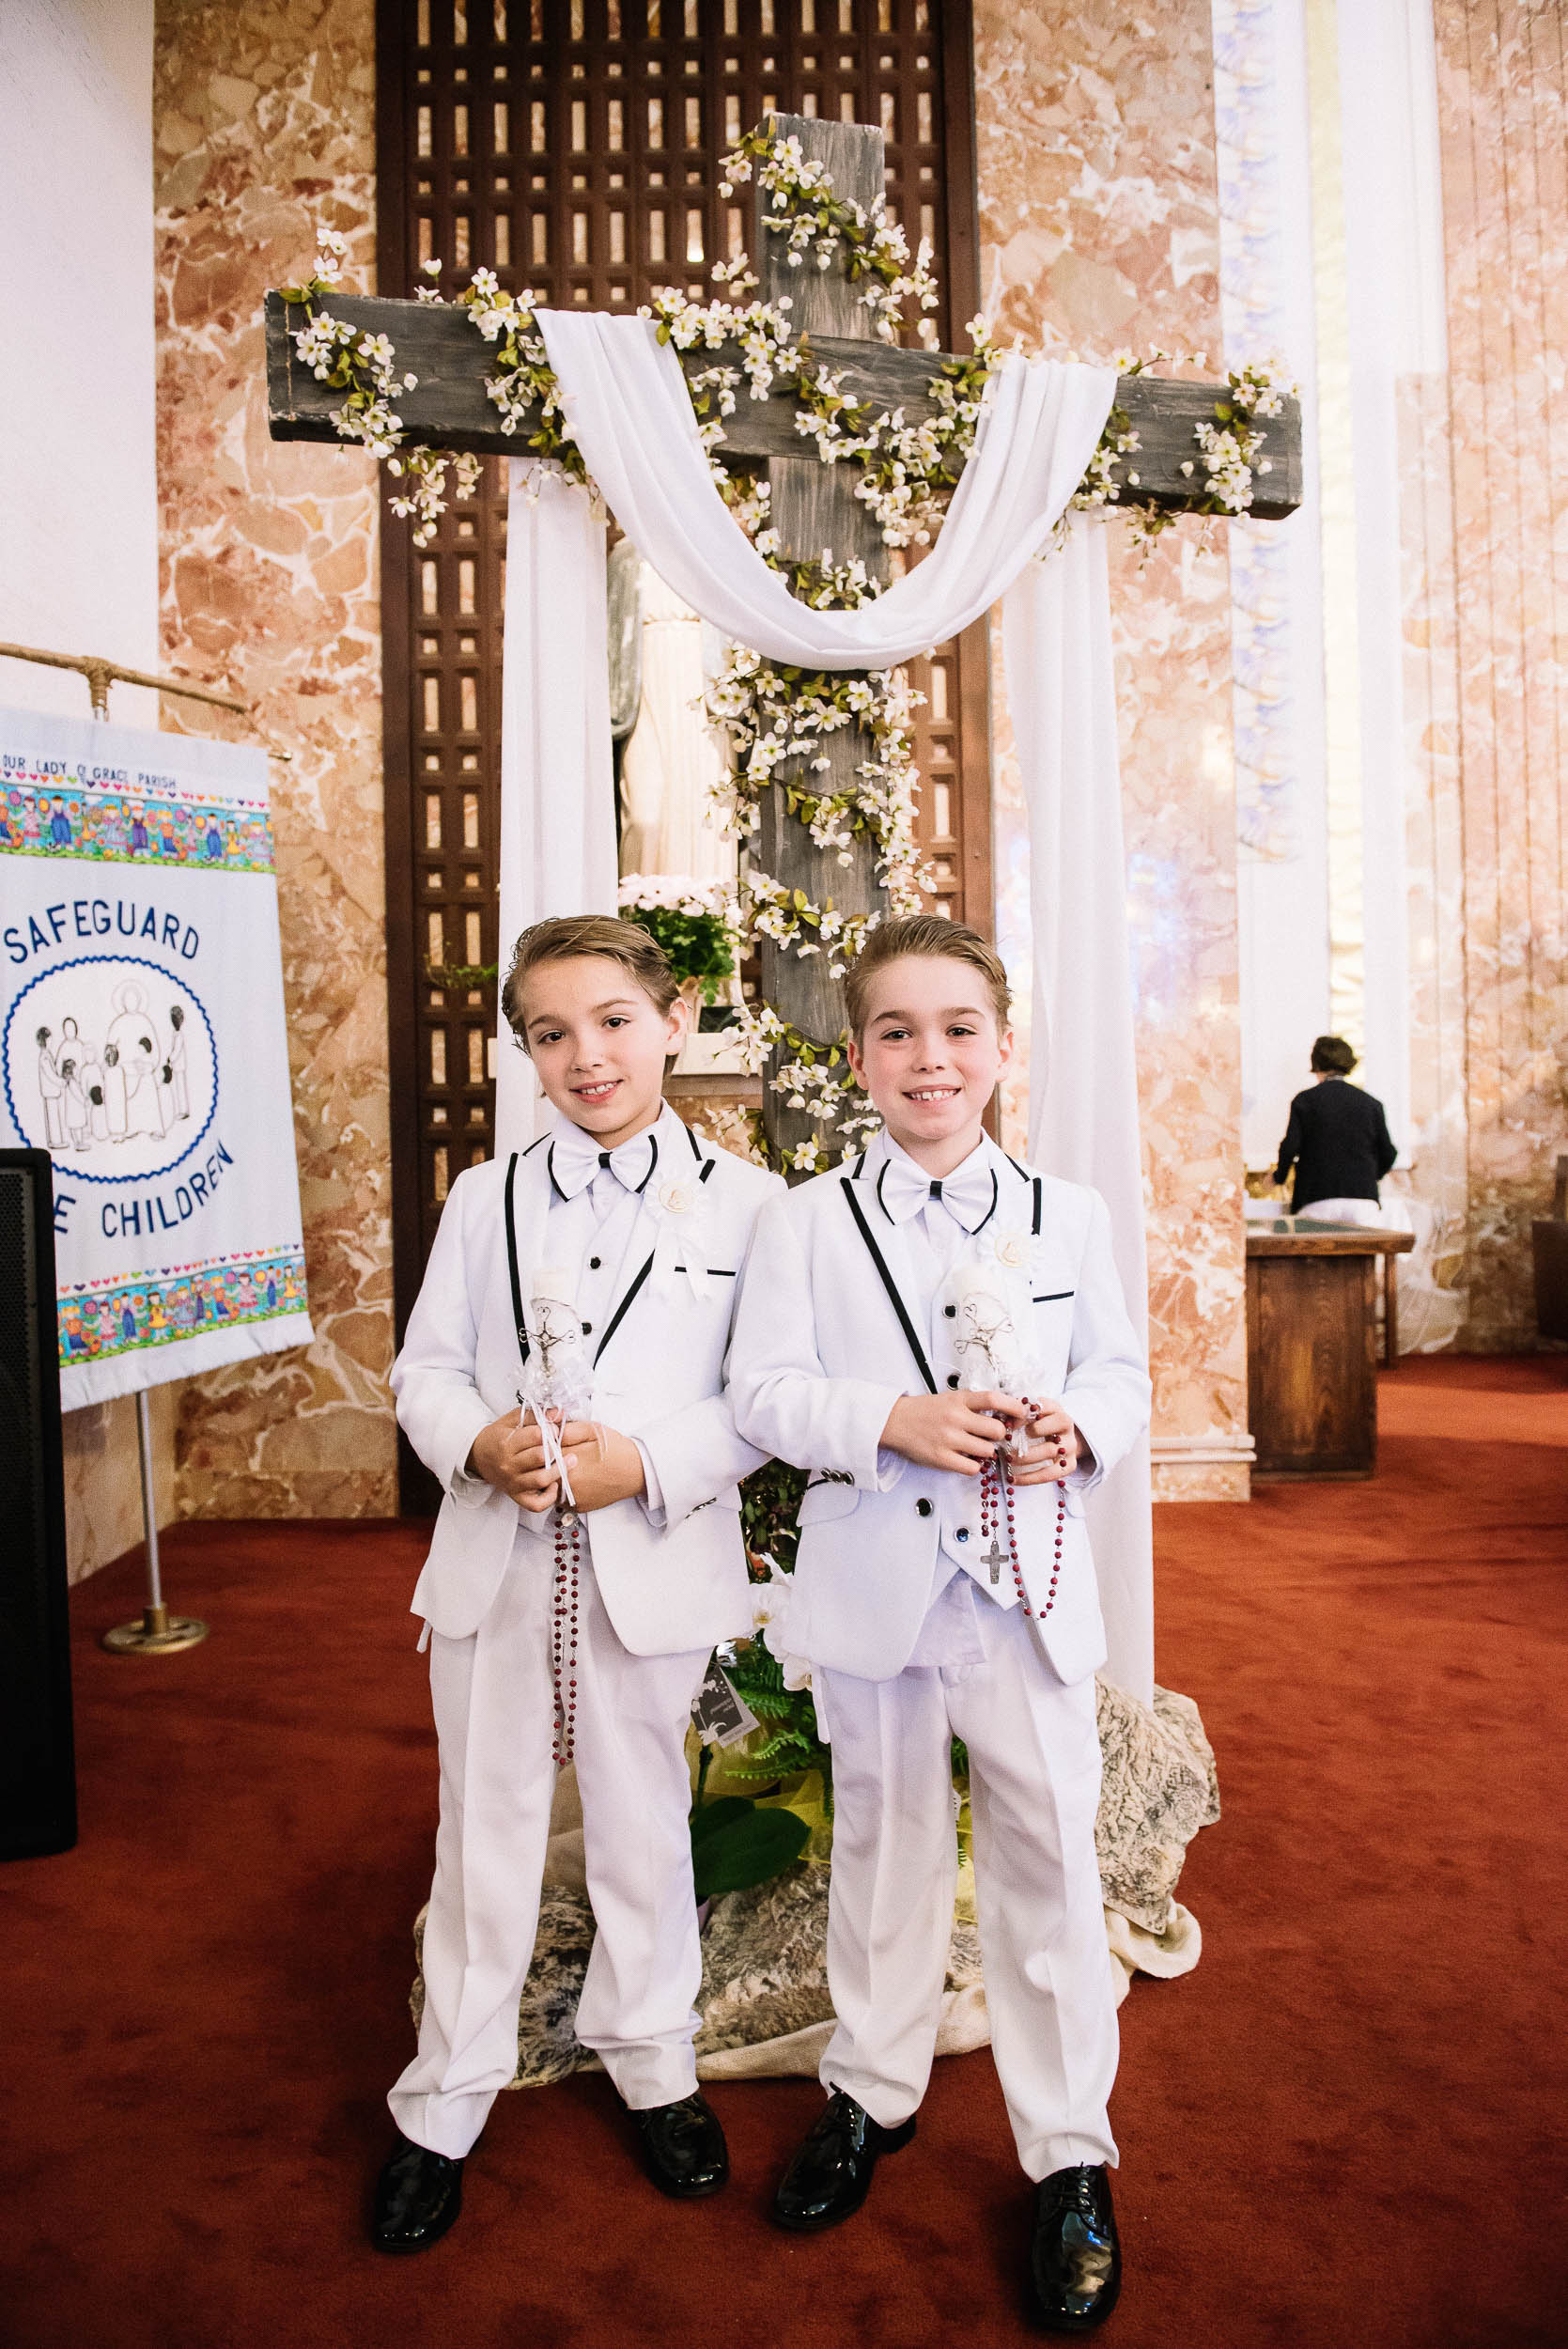 Bryan-Miraflor-Photography-First-Communion-Our-Lady-of-Grace-Church-20160501-0072.jpg